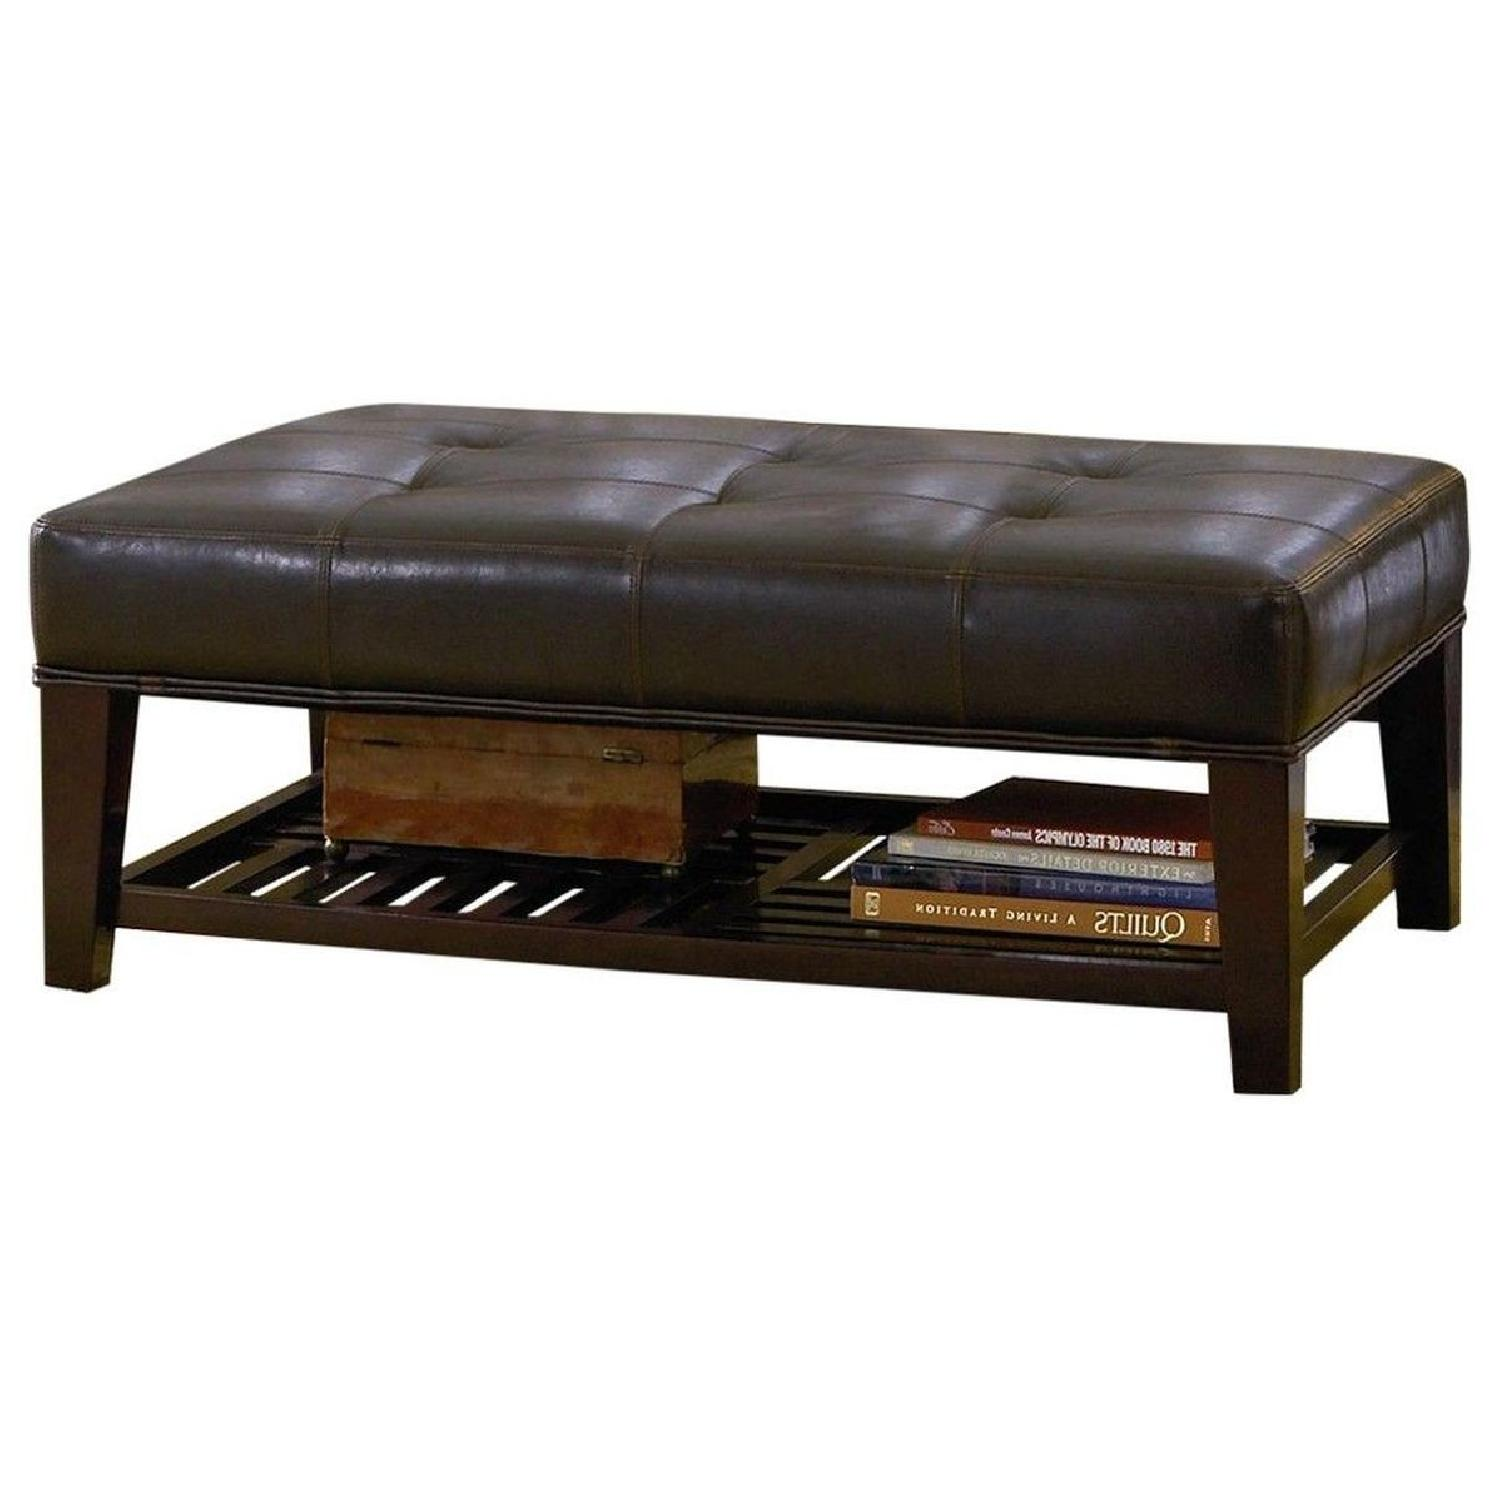 Cushioned Bench in Dark Brown Leatherette w/ Shelf - image-1